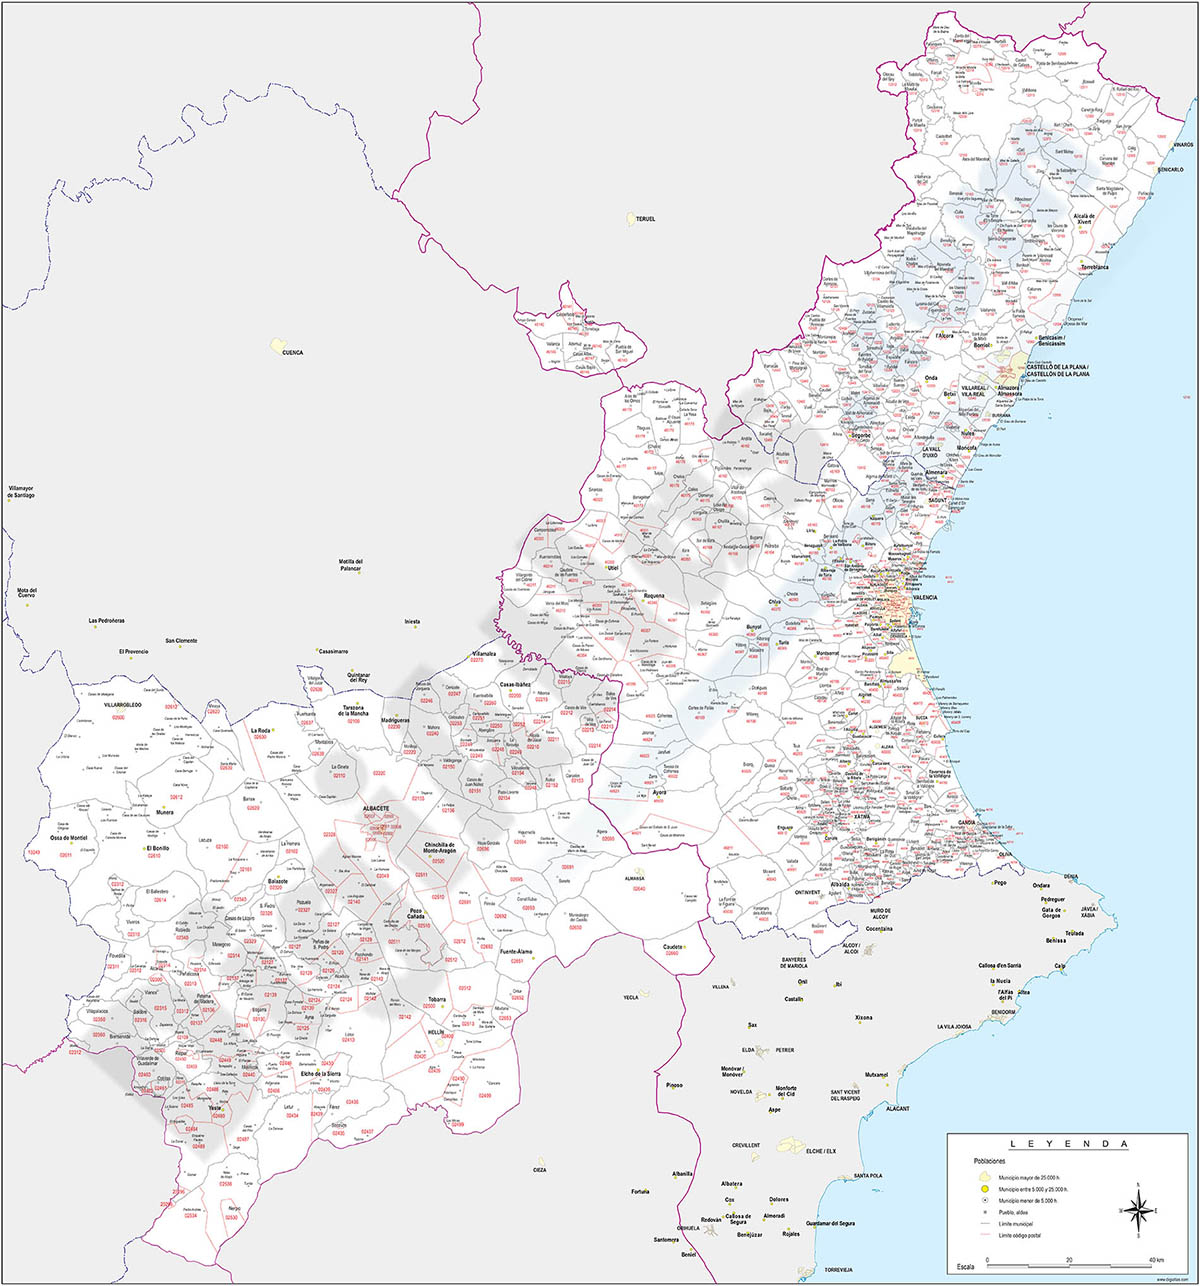 Map of Albacete, Valencia and Castellon provinces with municipalities and postal codes